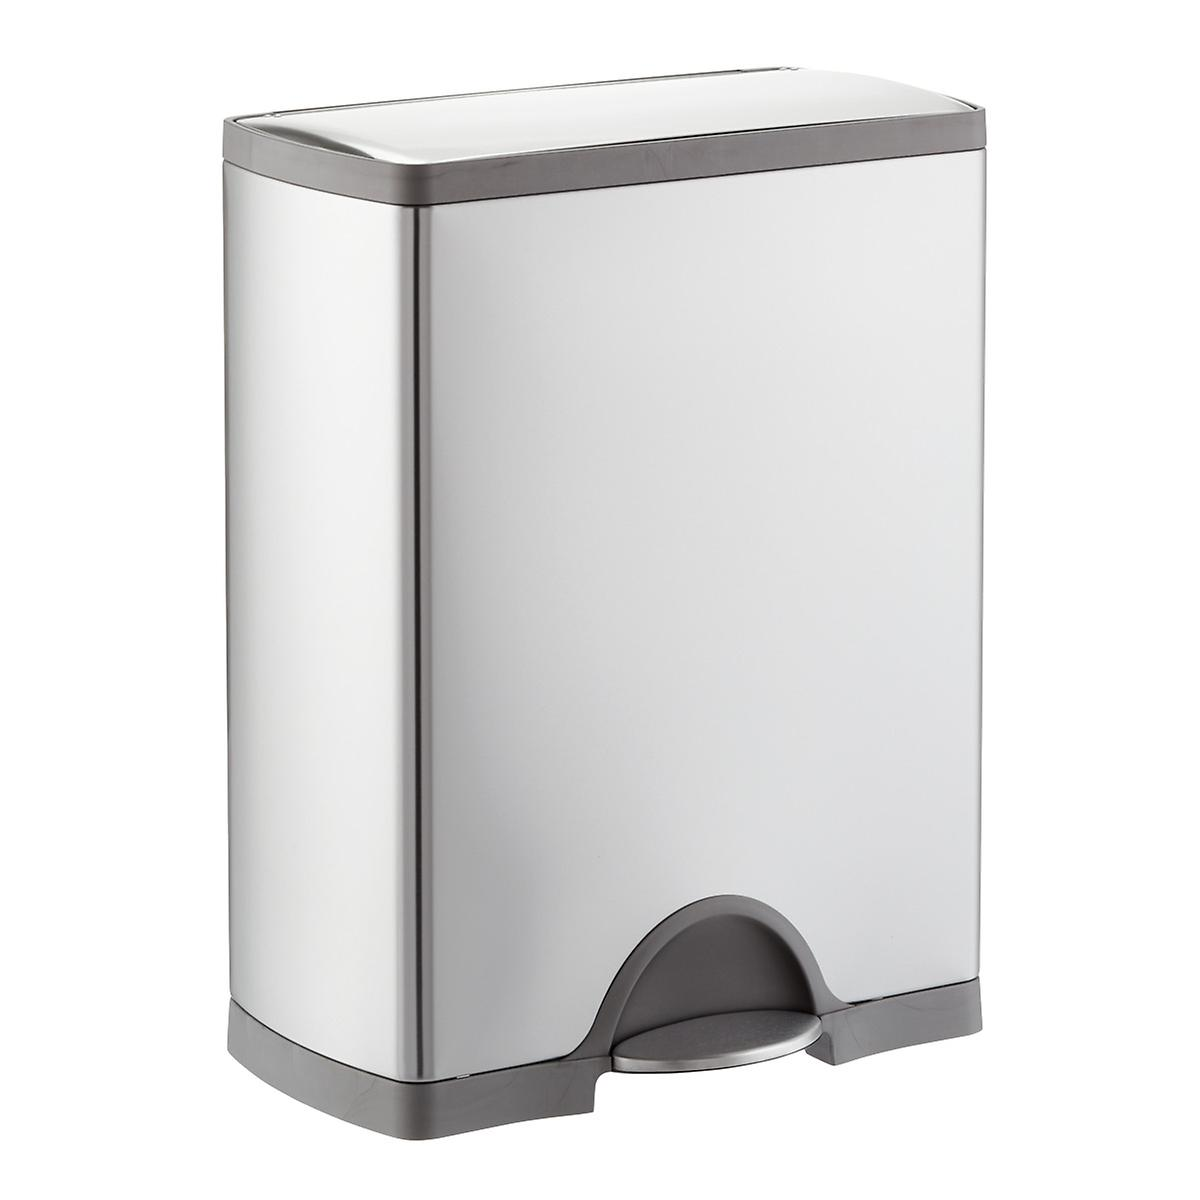 simplehuman 13 gal. Rectangular Step Trash Can